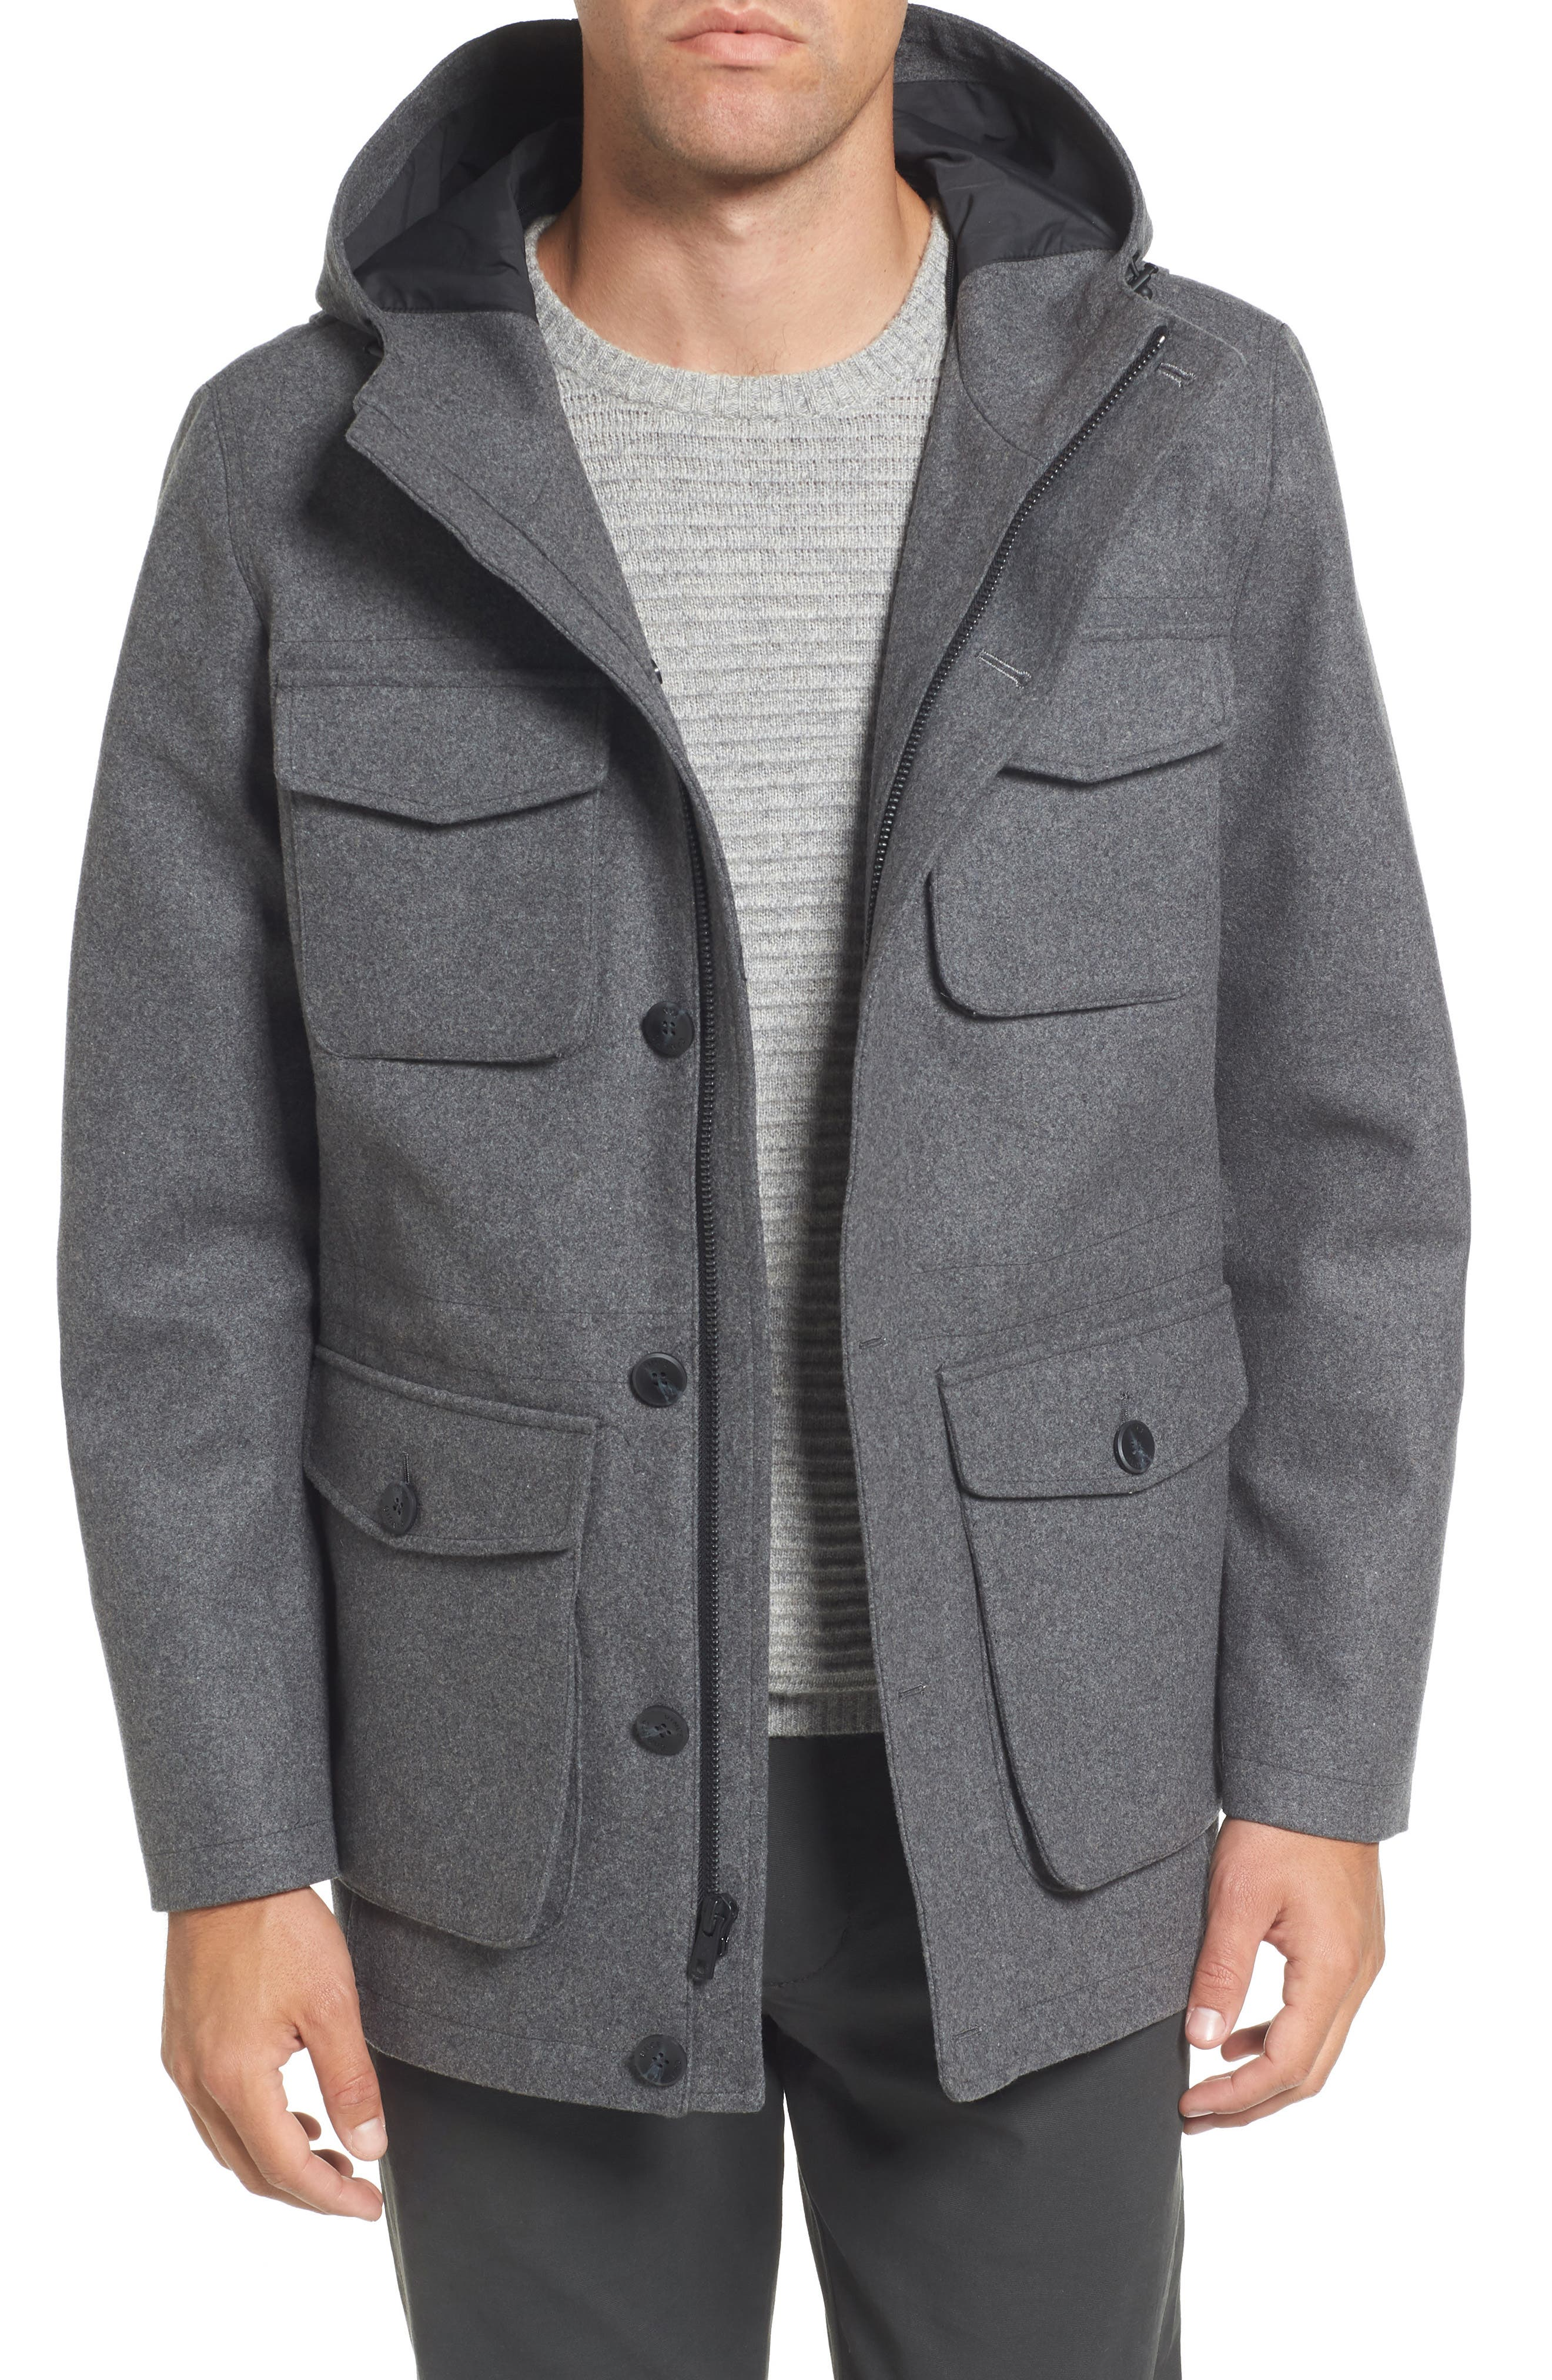 Main Image - Vince Camuto Hooded Jacket with Removable Bib